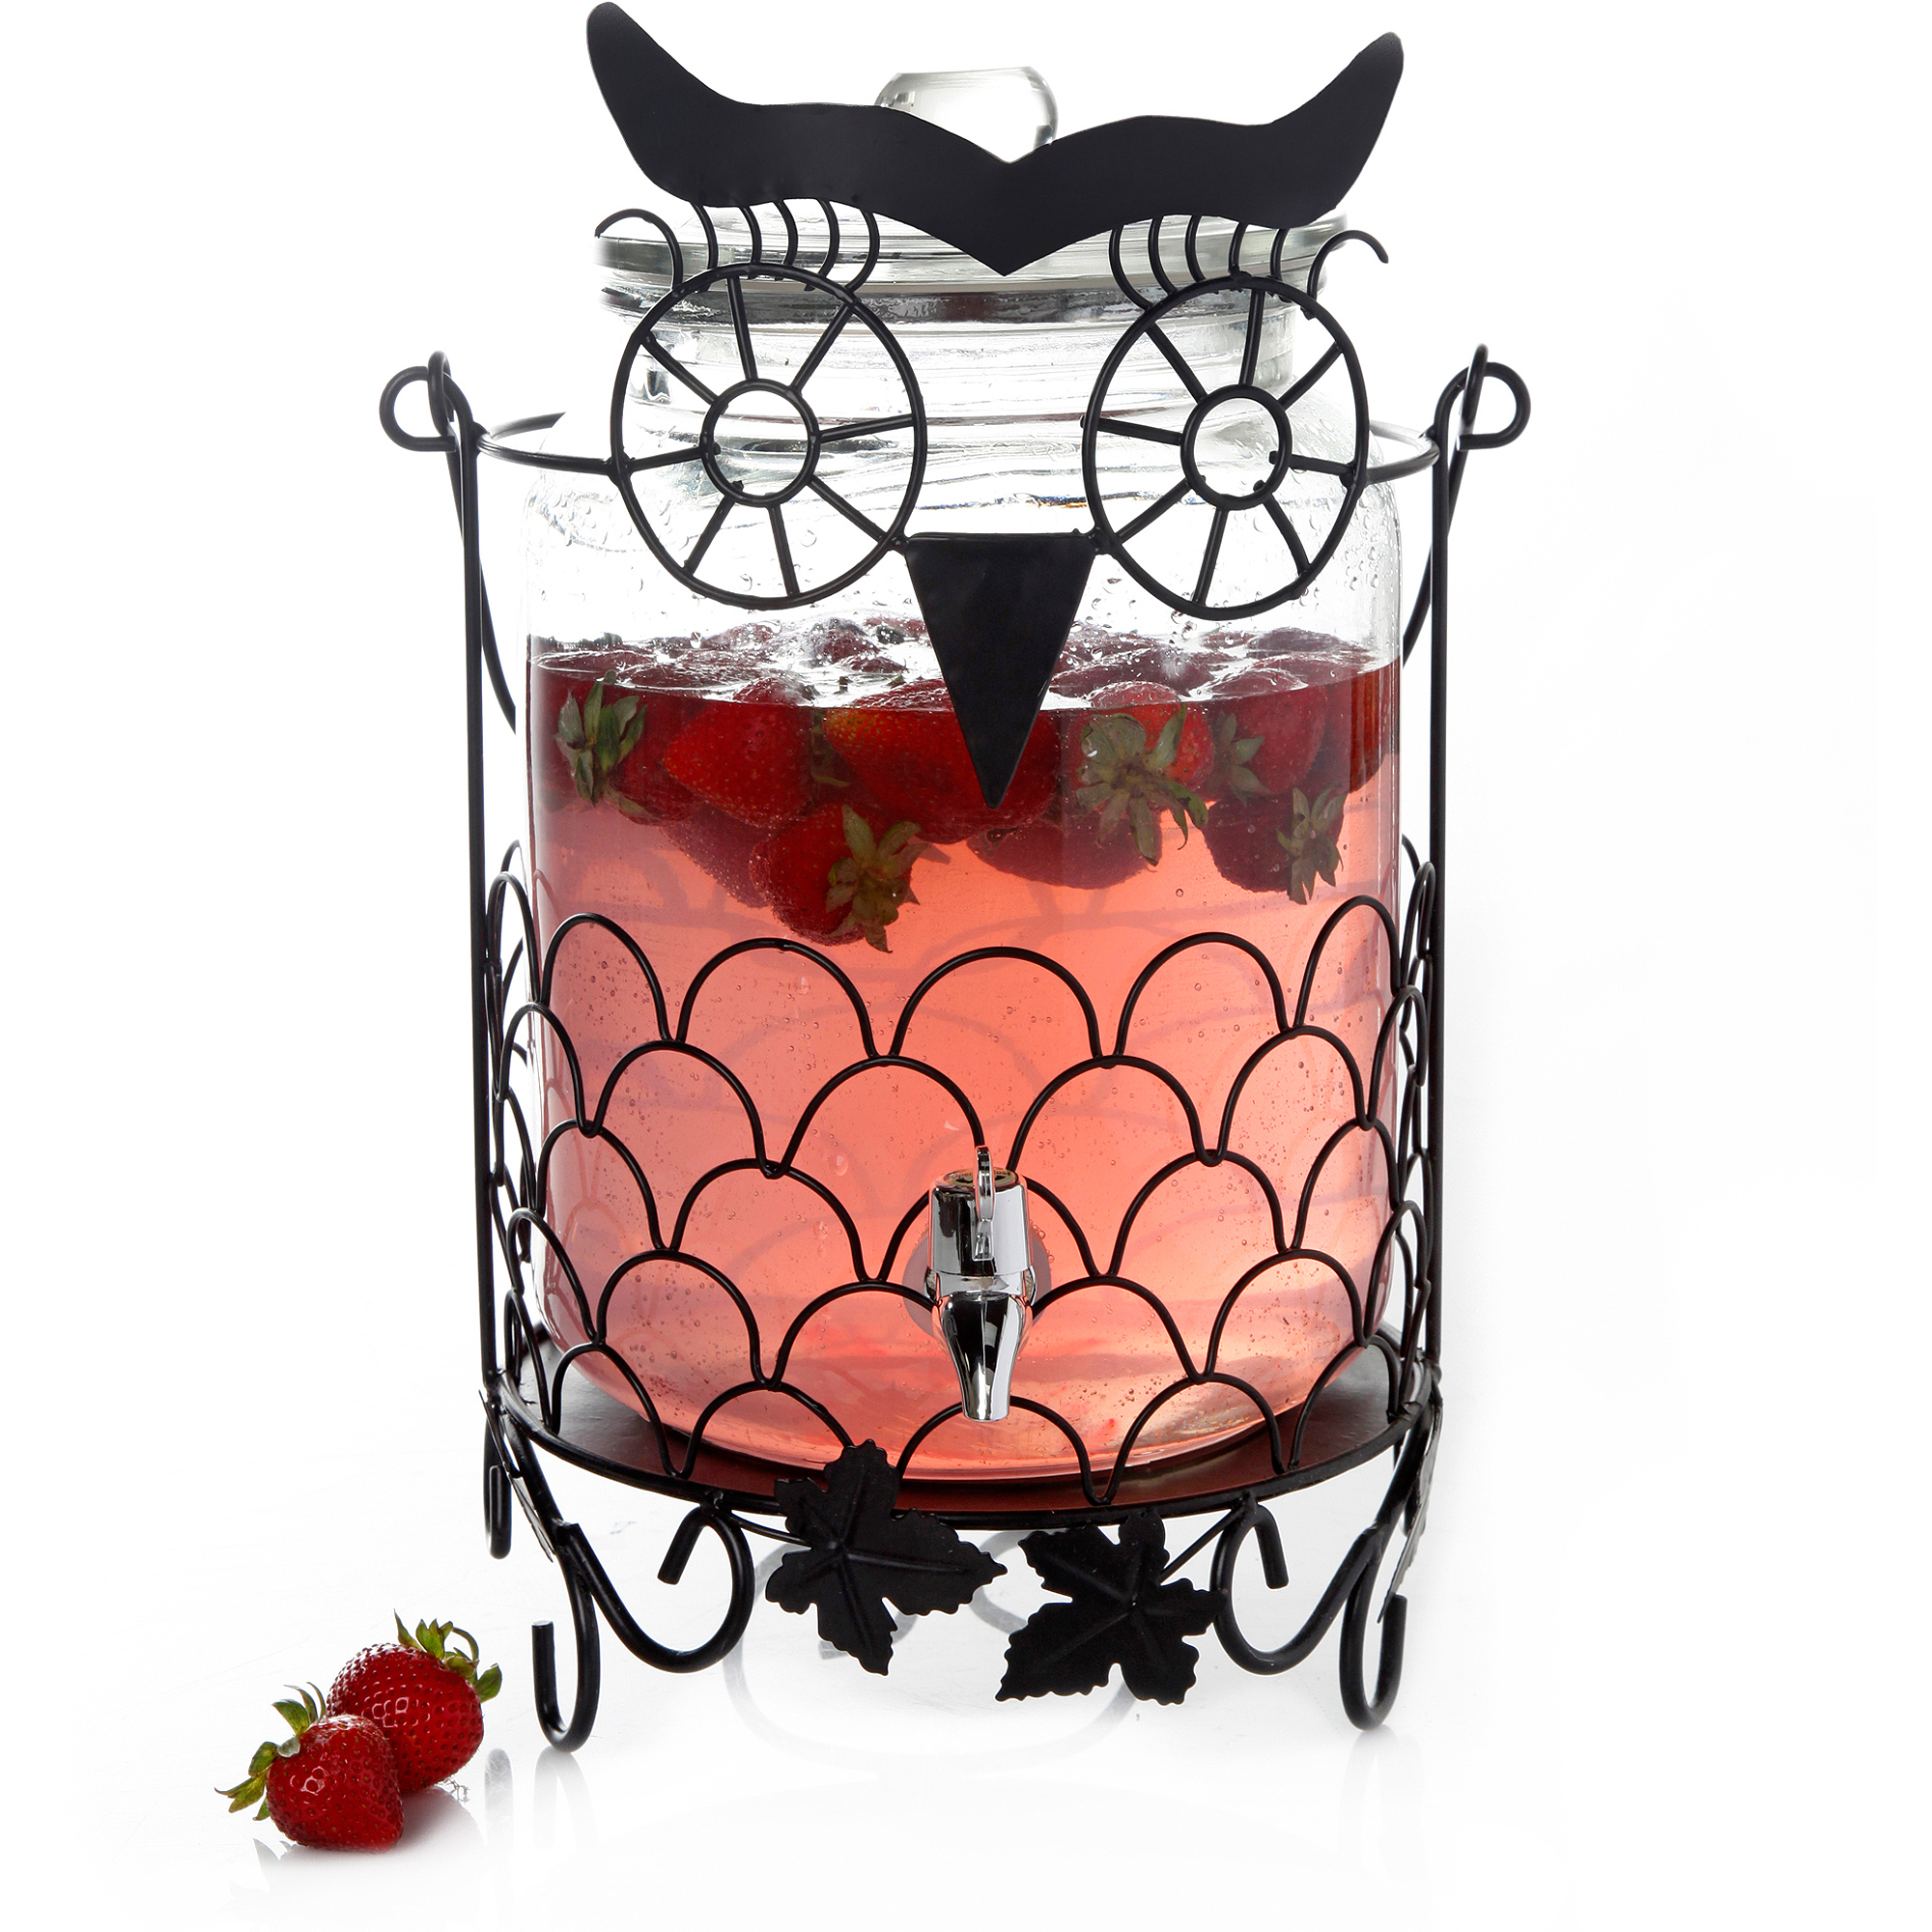 Gibson Home Payson 1.58 gal Glass Drink Dispenser with Black Metal Owl Rack, Glass